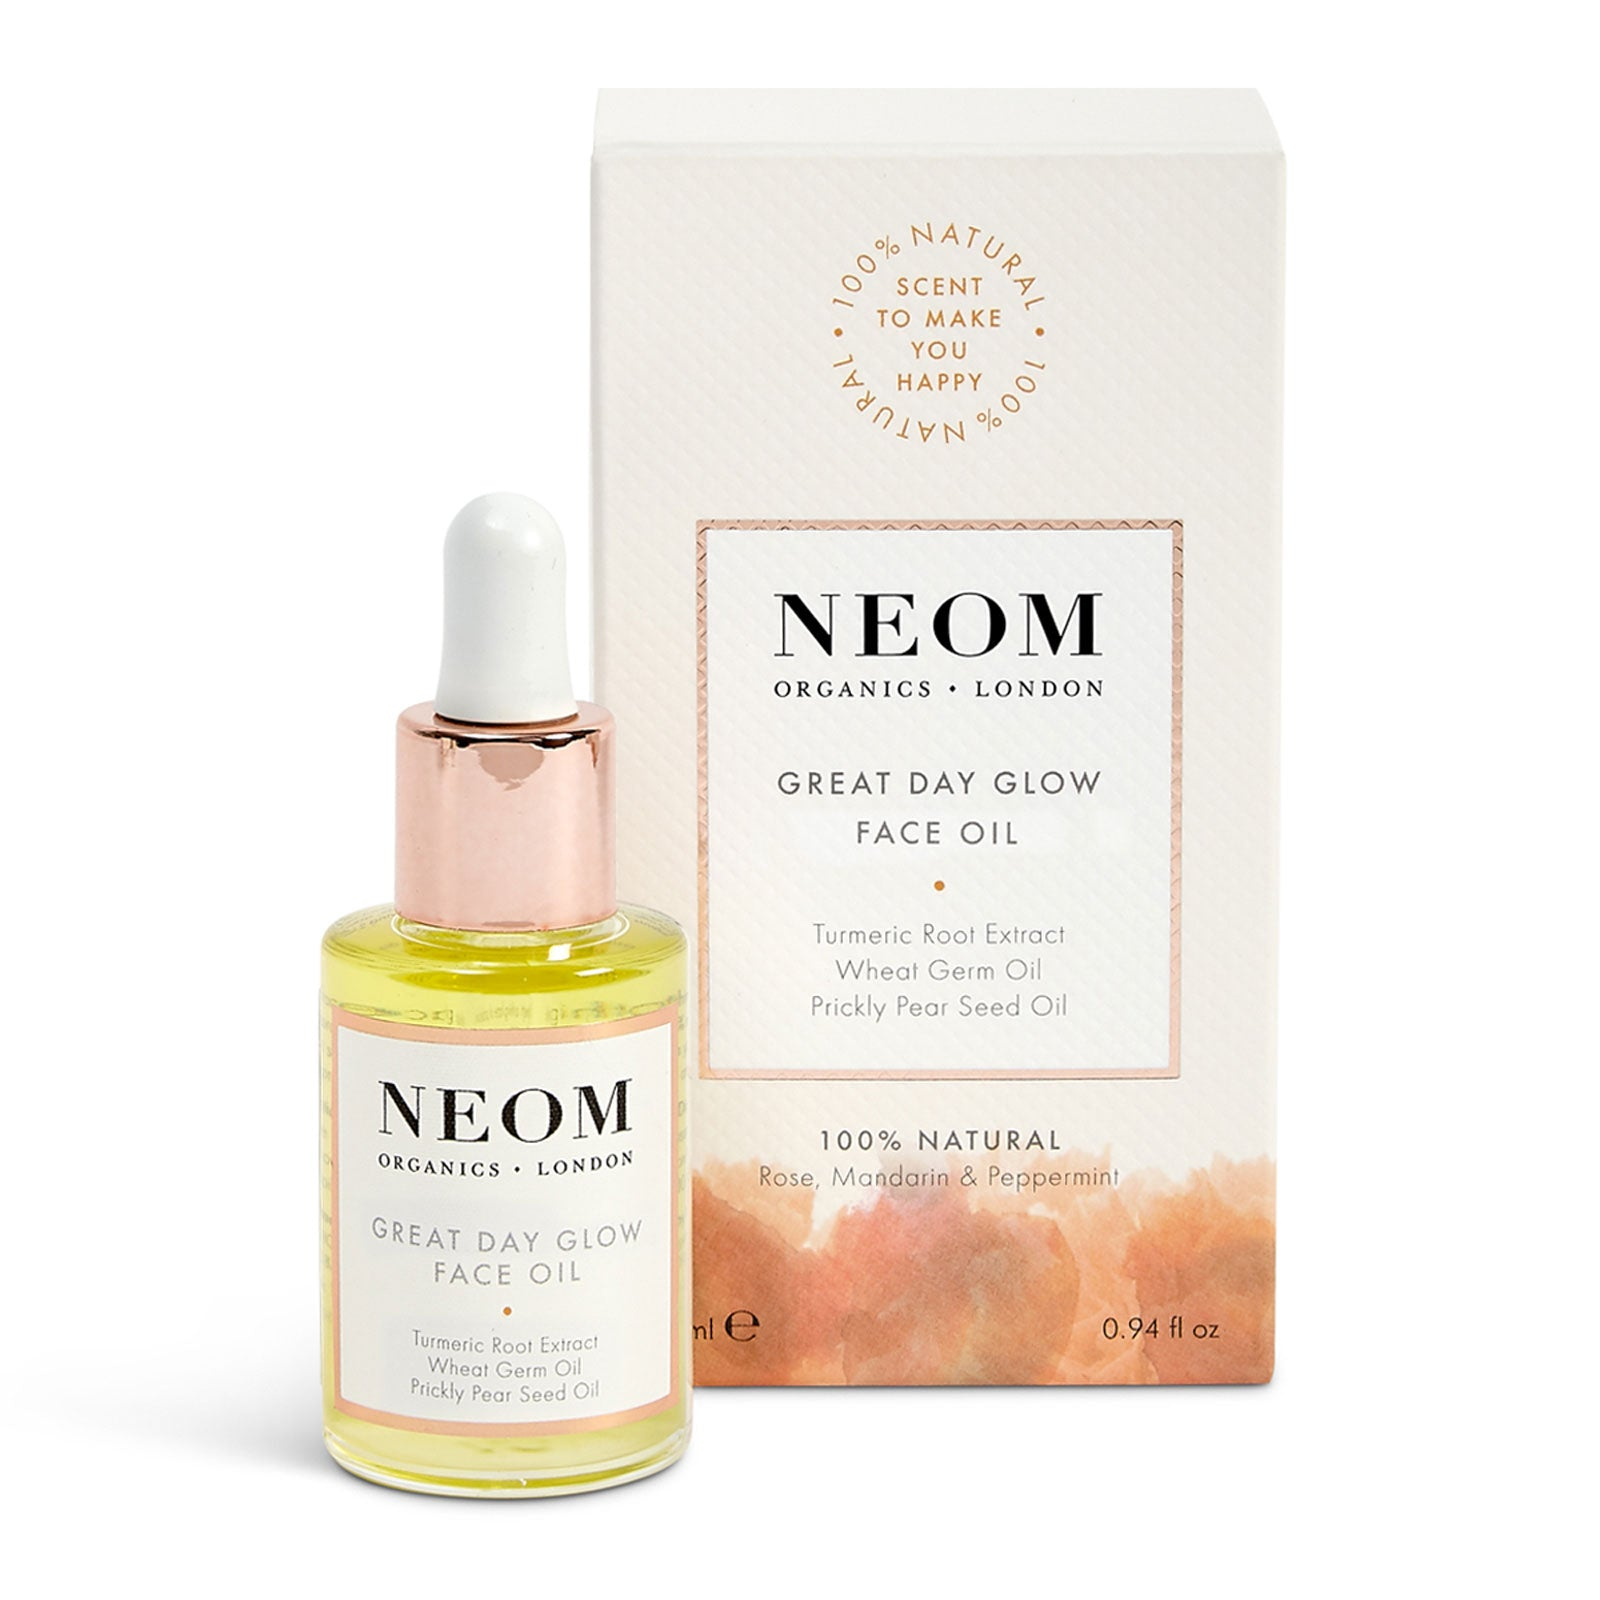 NEOM Organics London Great Day Glow Face Oil 28ml